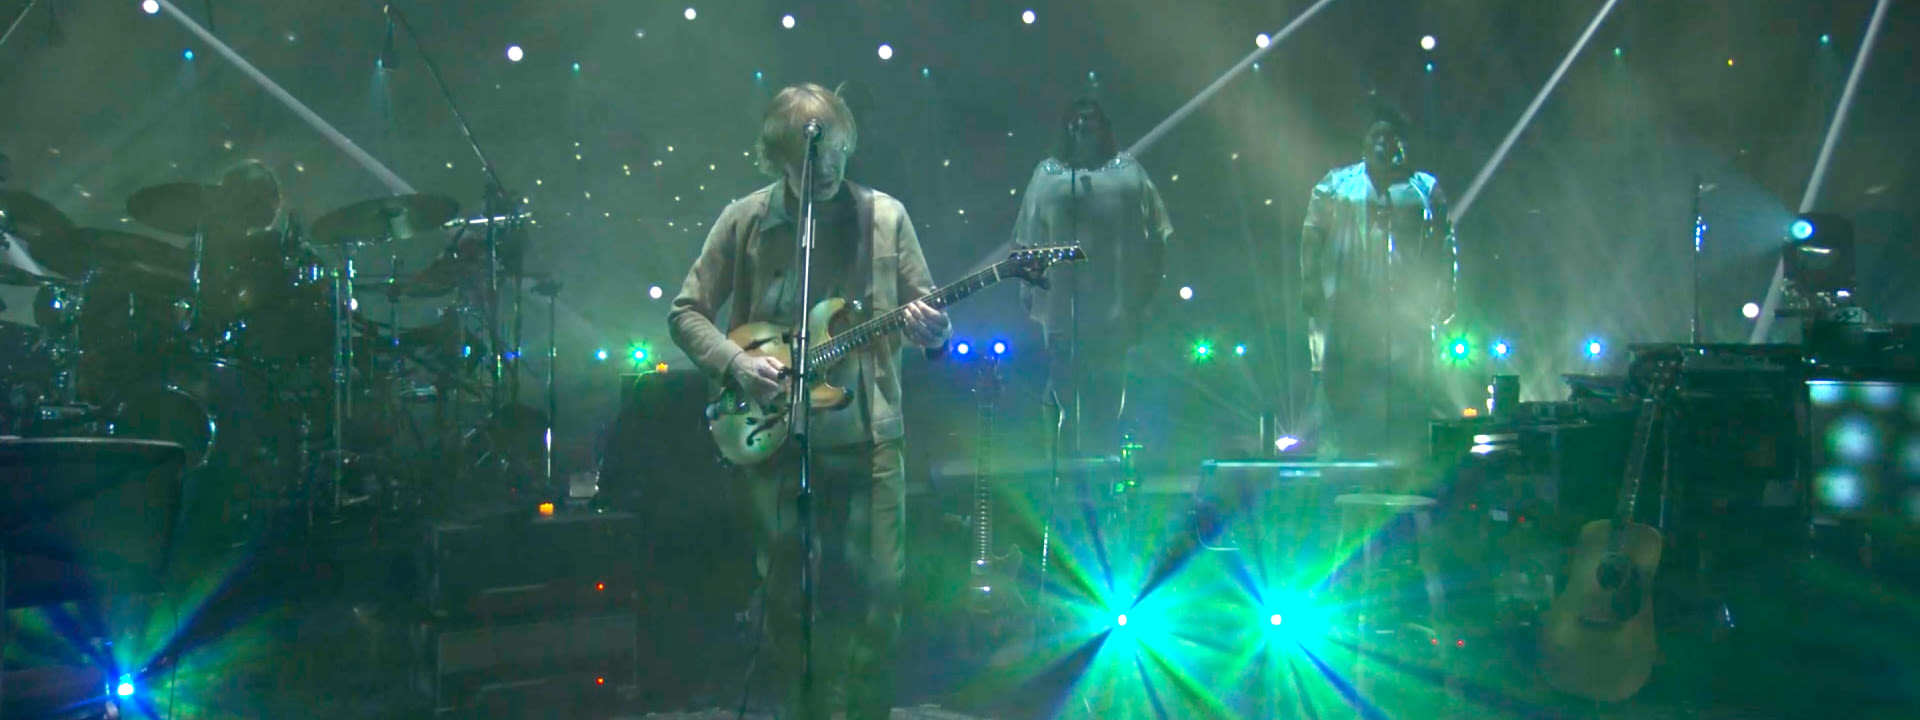 Trey Anastasio: 'Ghosts of the Forest'